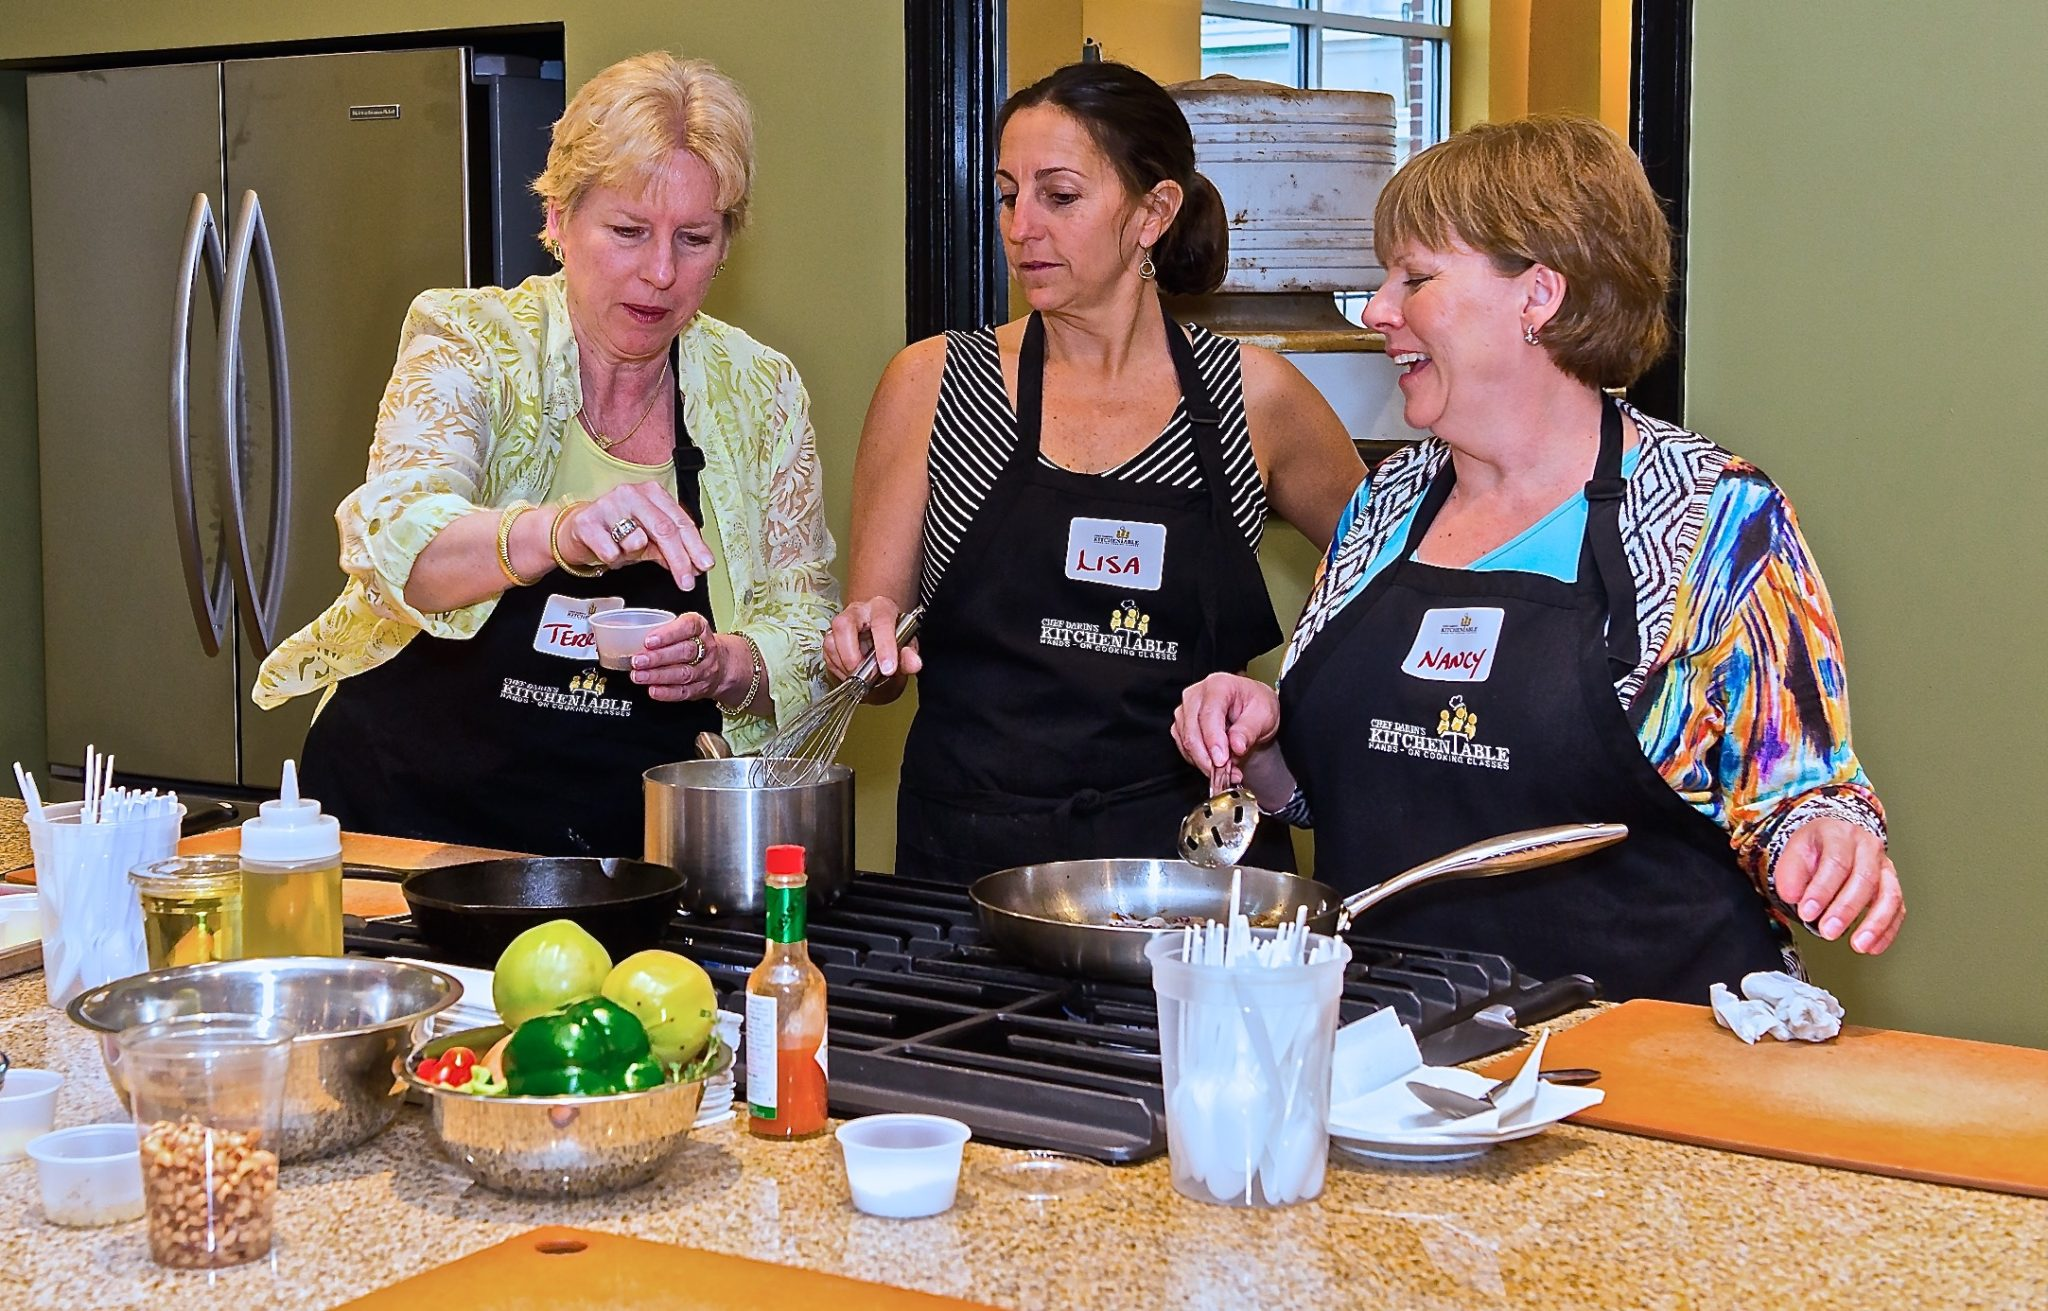 Get hands-on in cooking classes with Chef Darin in Savannah, GA